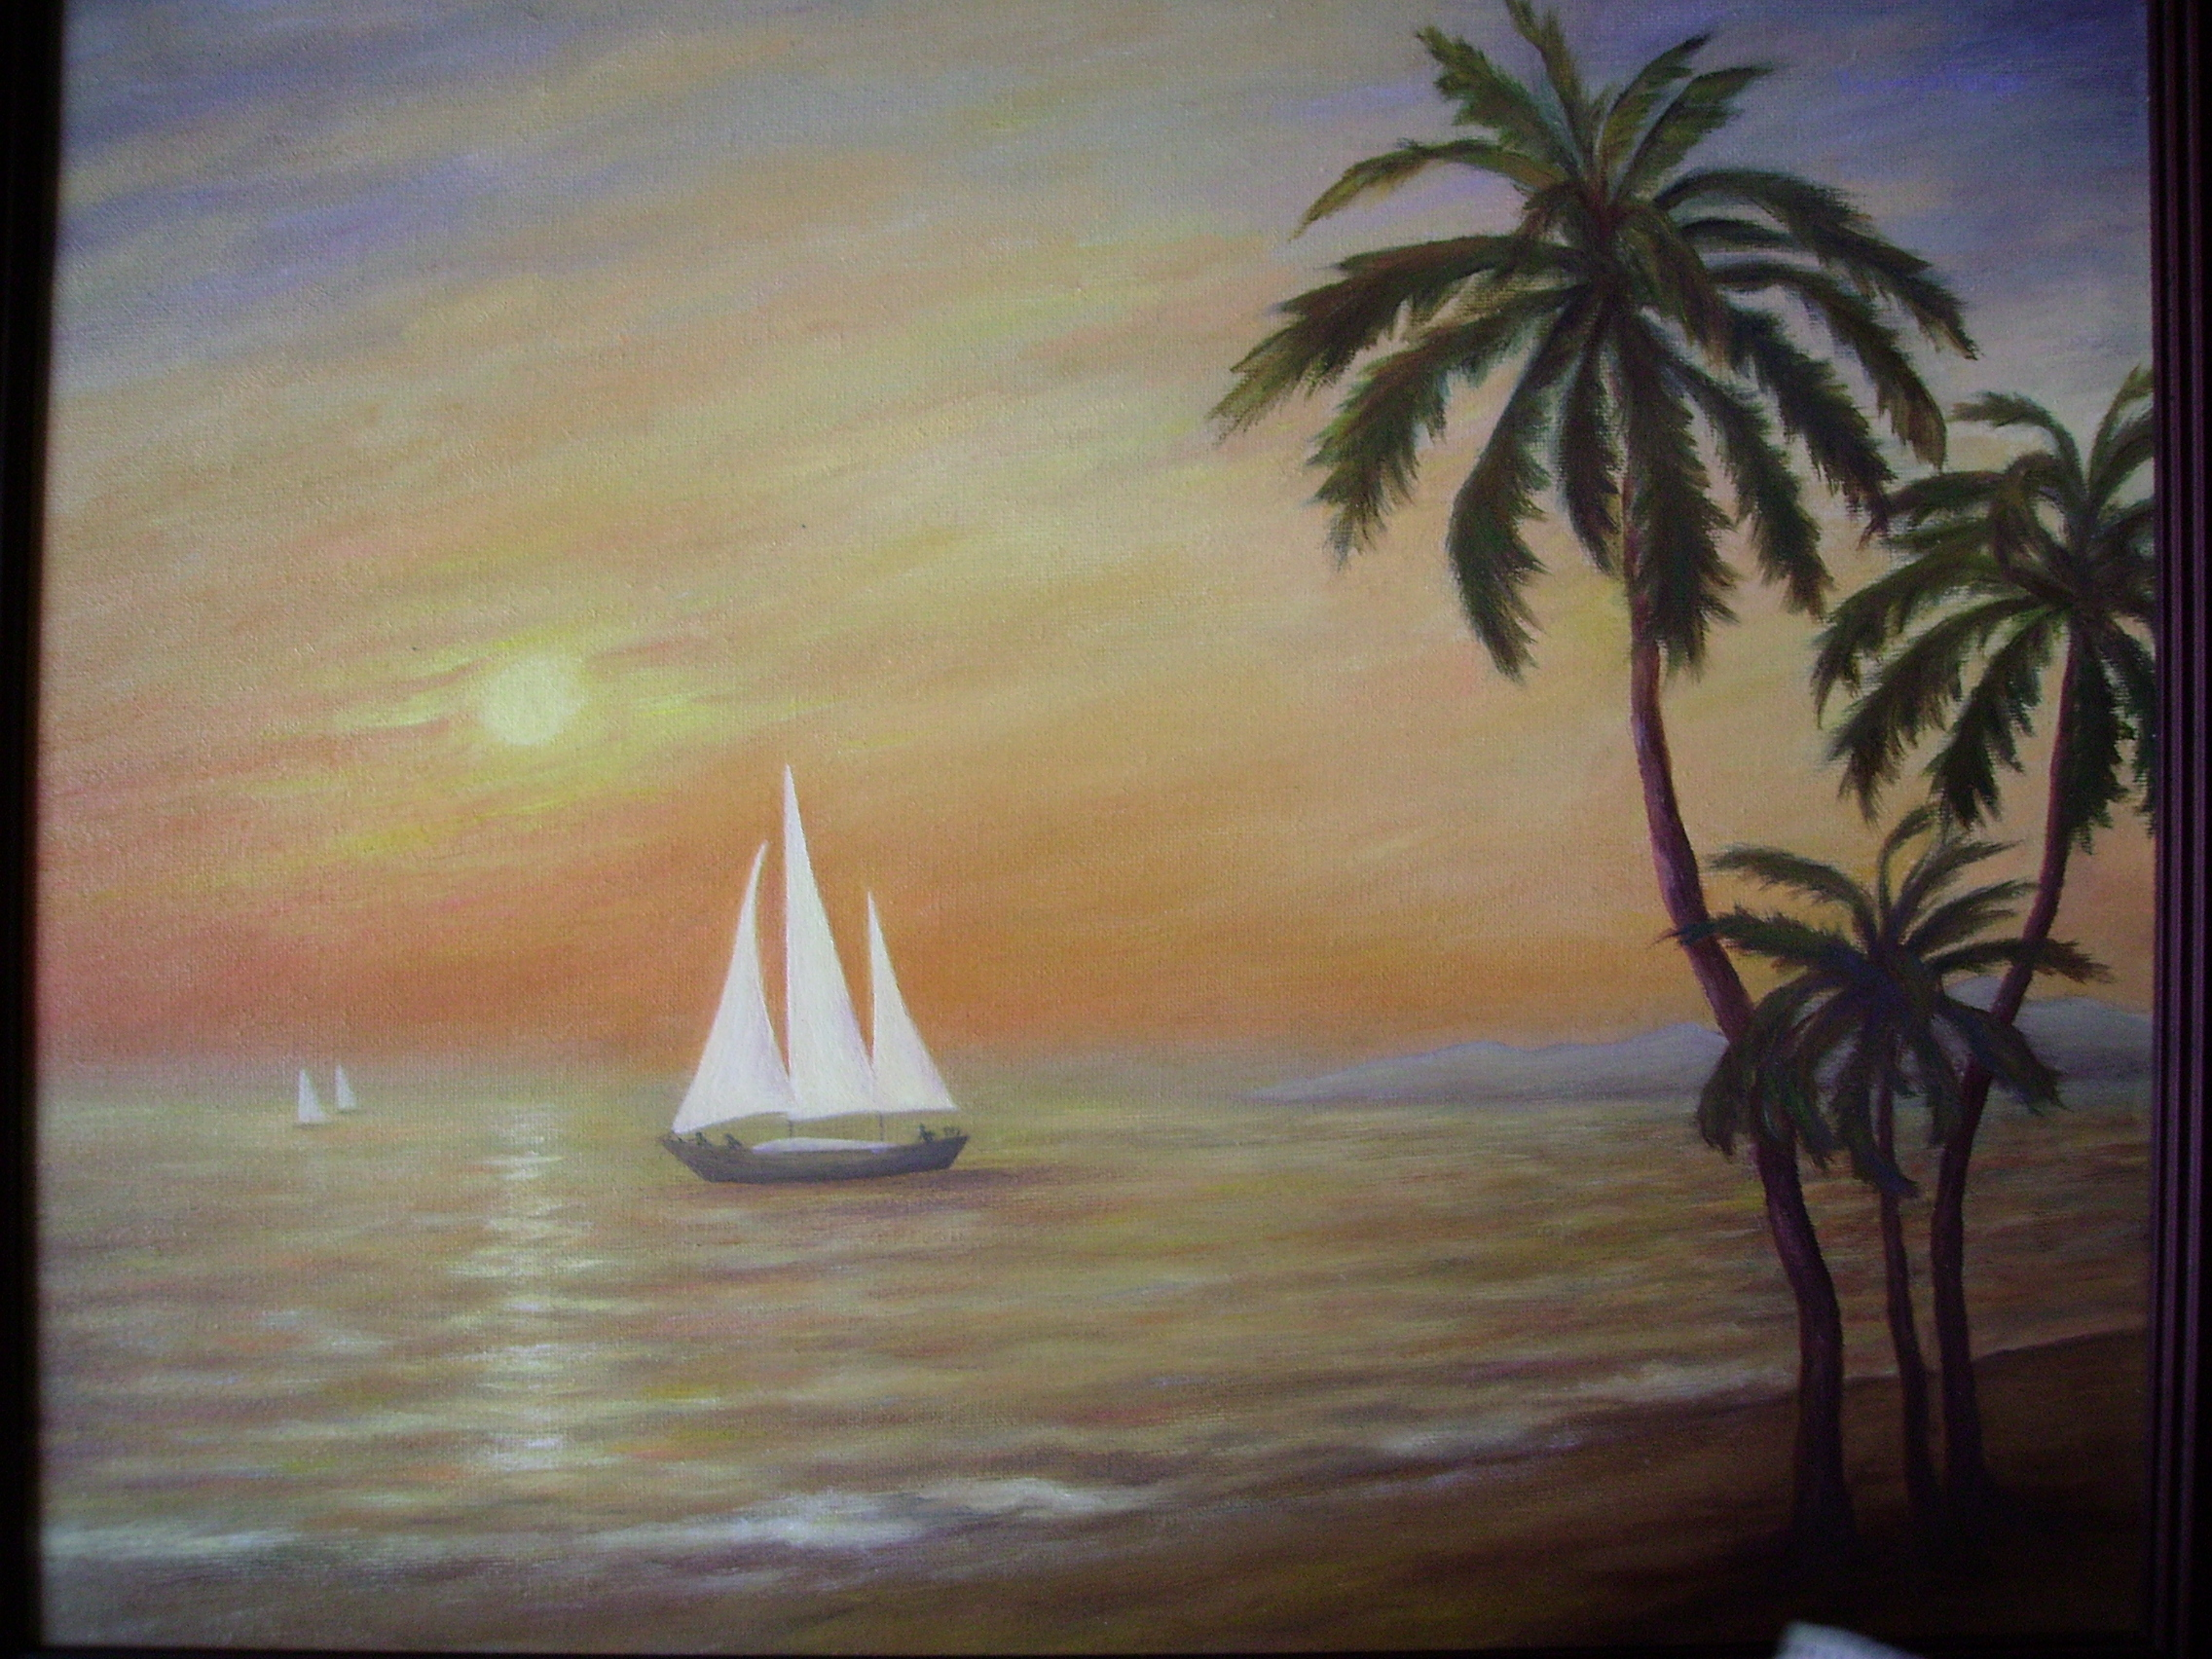 Painting of a sailboat on the water with palm trees